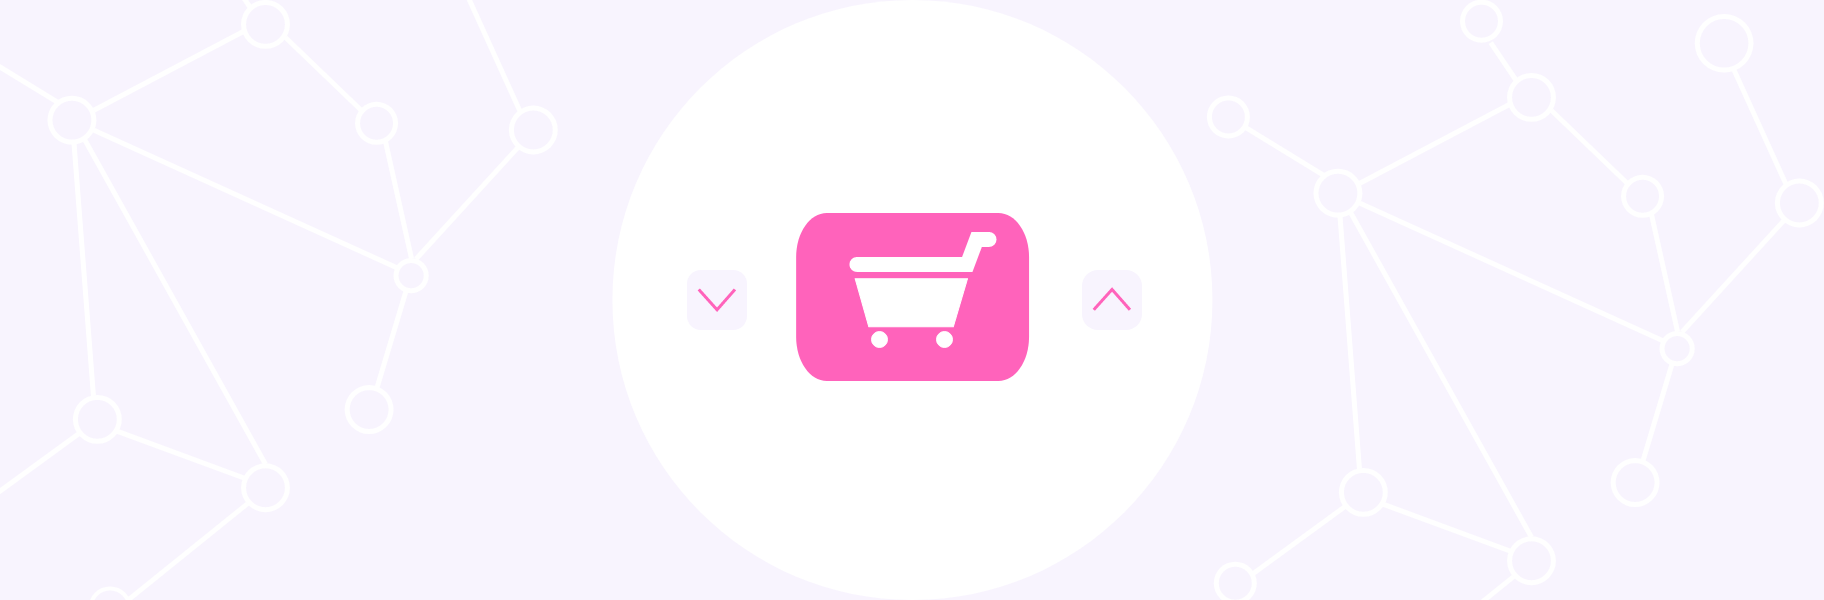 shopify product page image